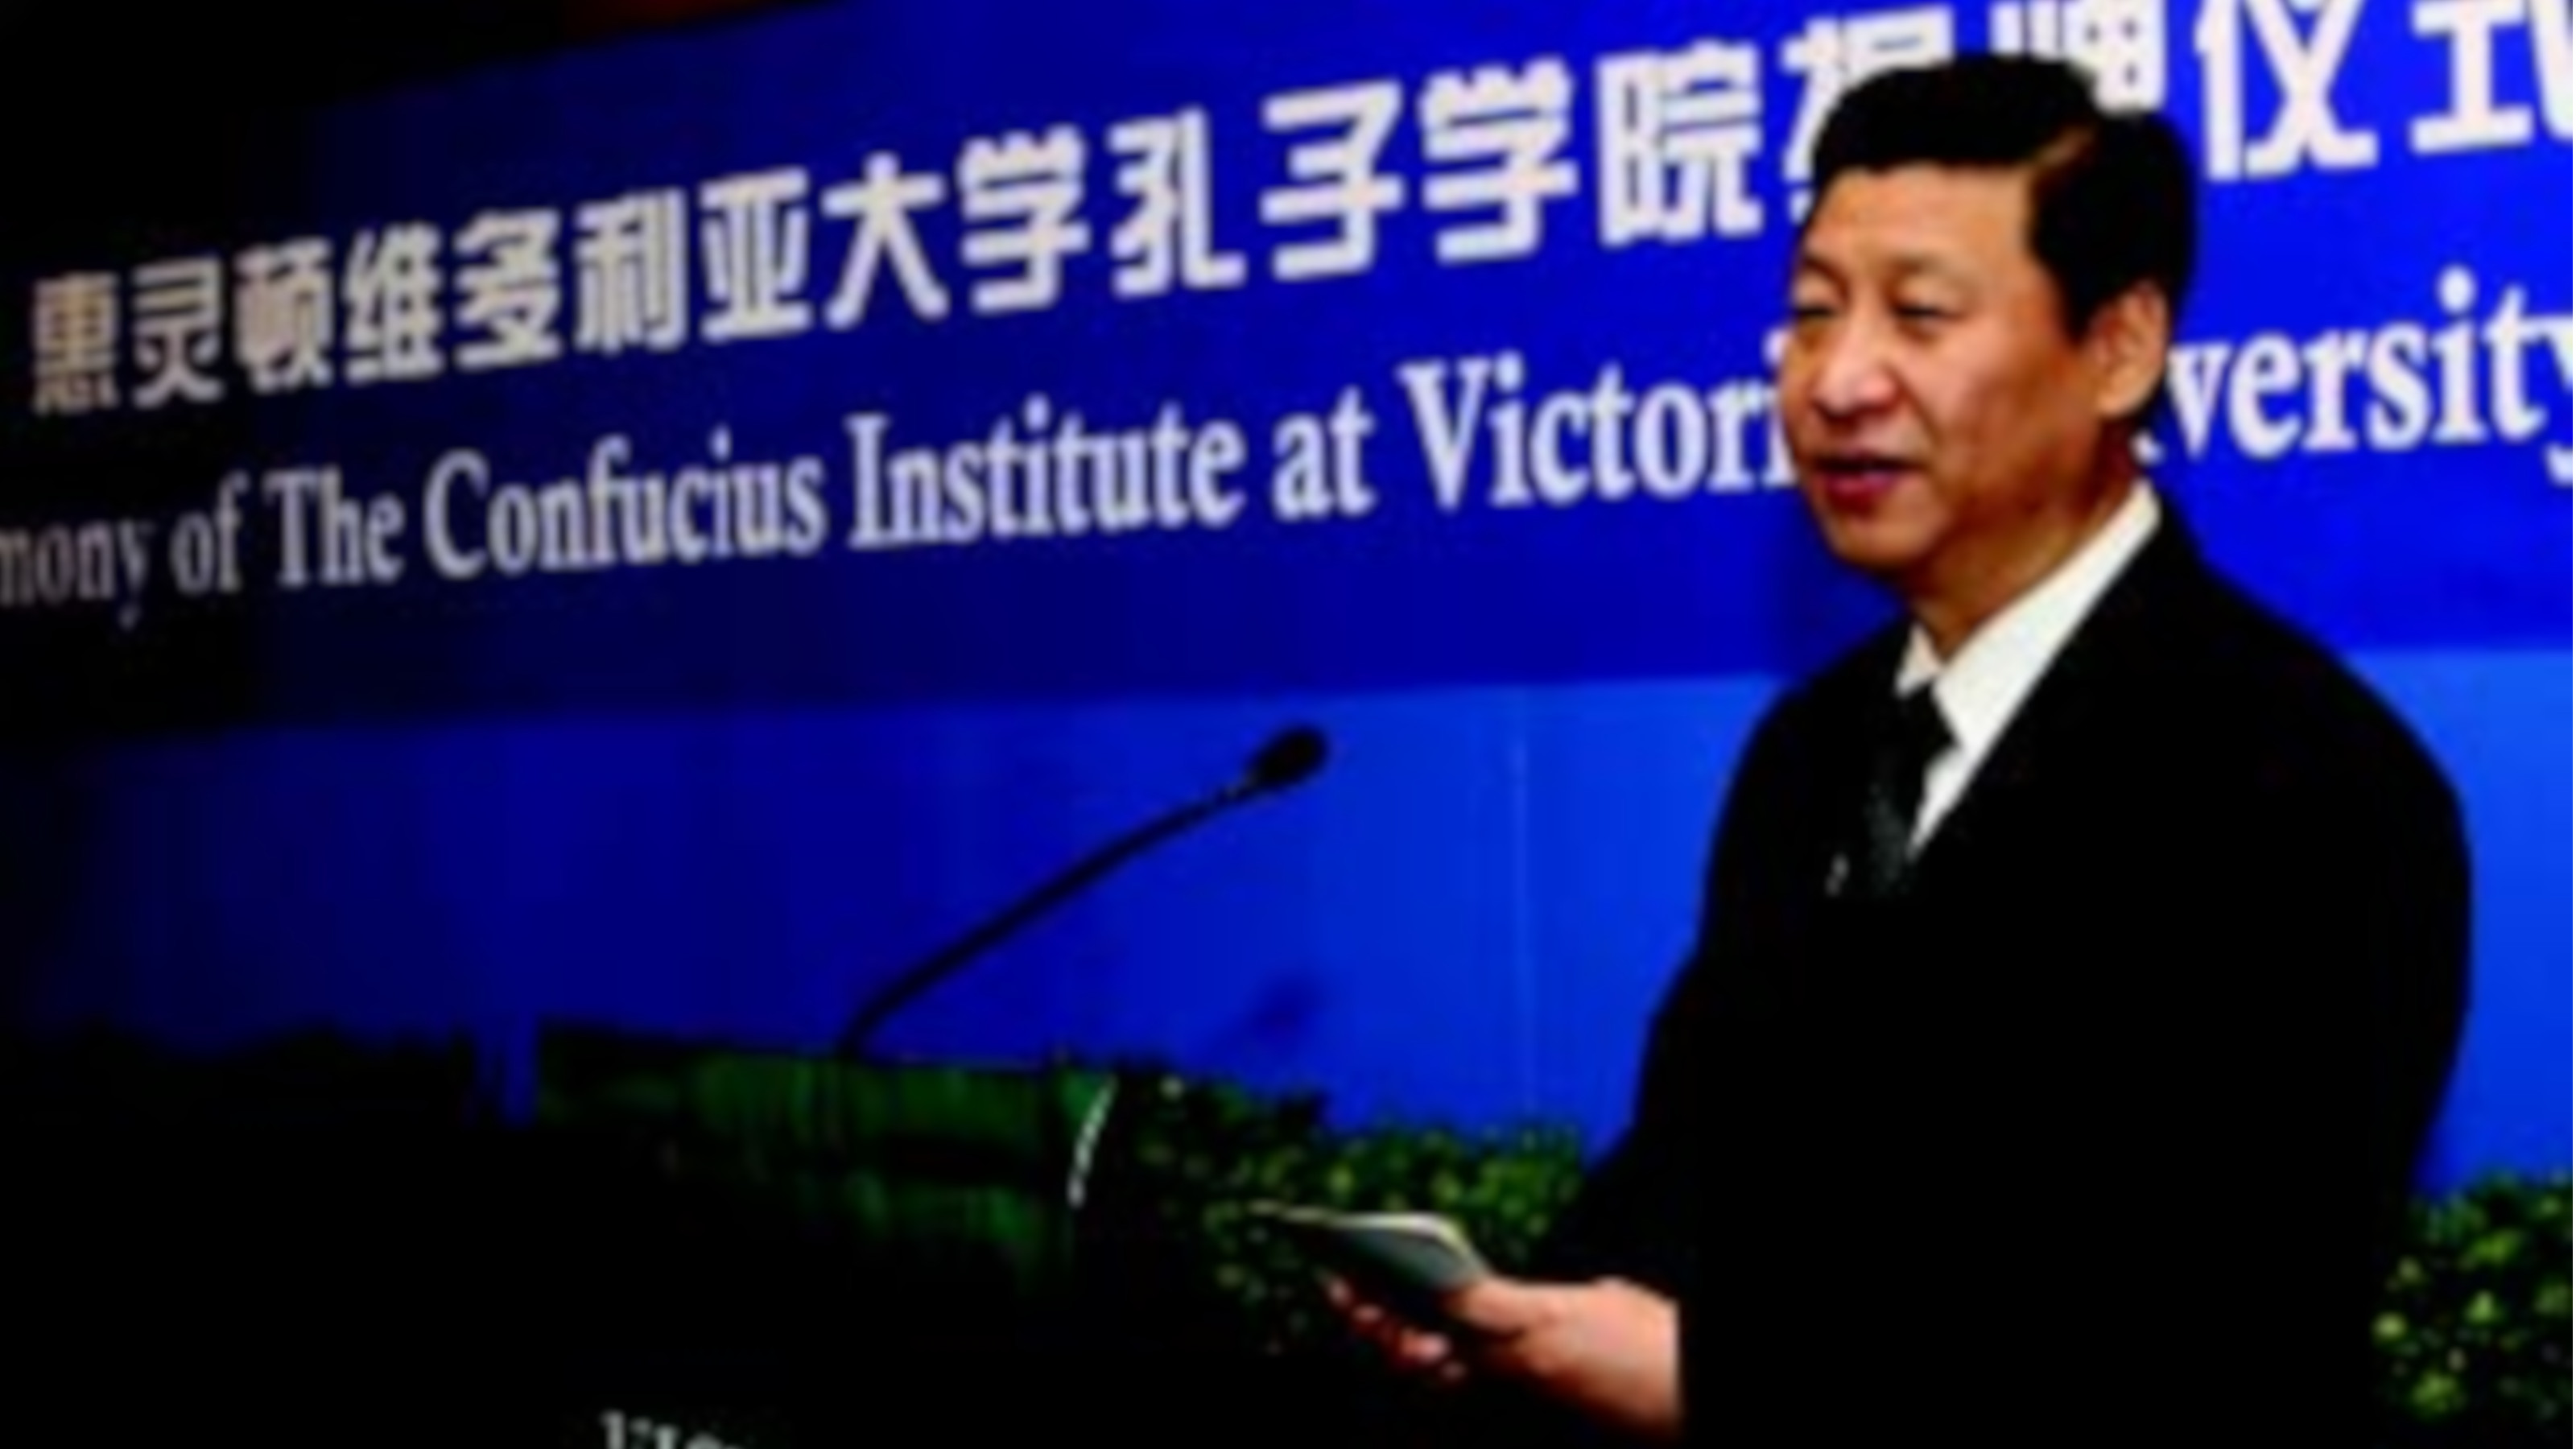 Chinese president Xi Jiping launches the Confucius Institute at Victoria University